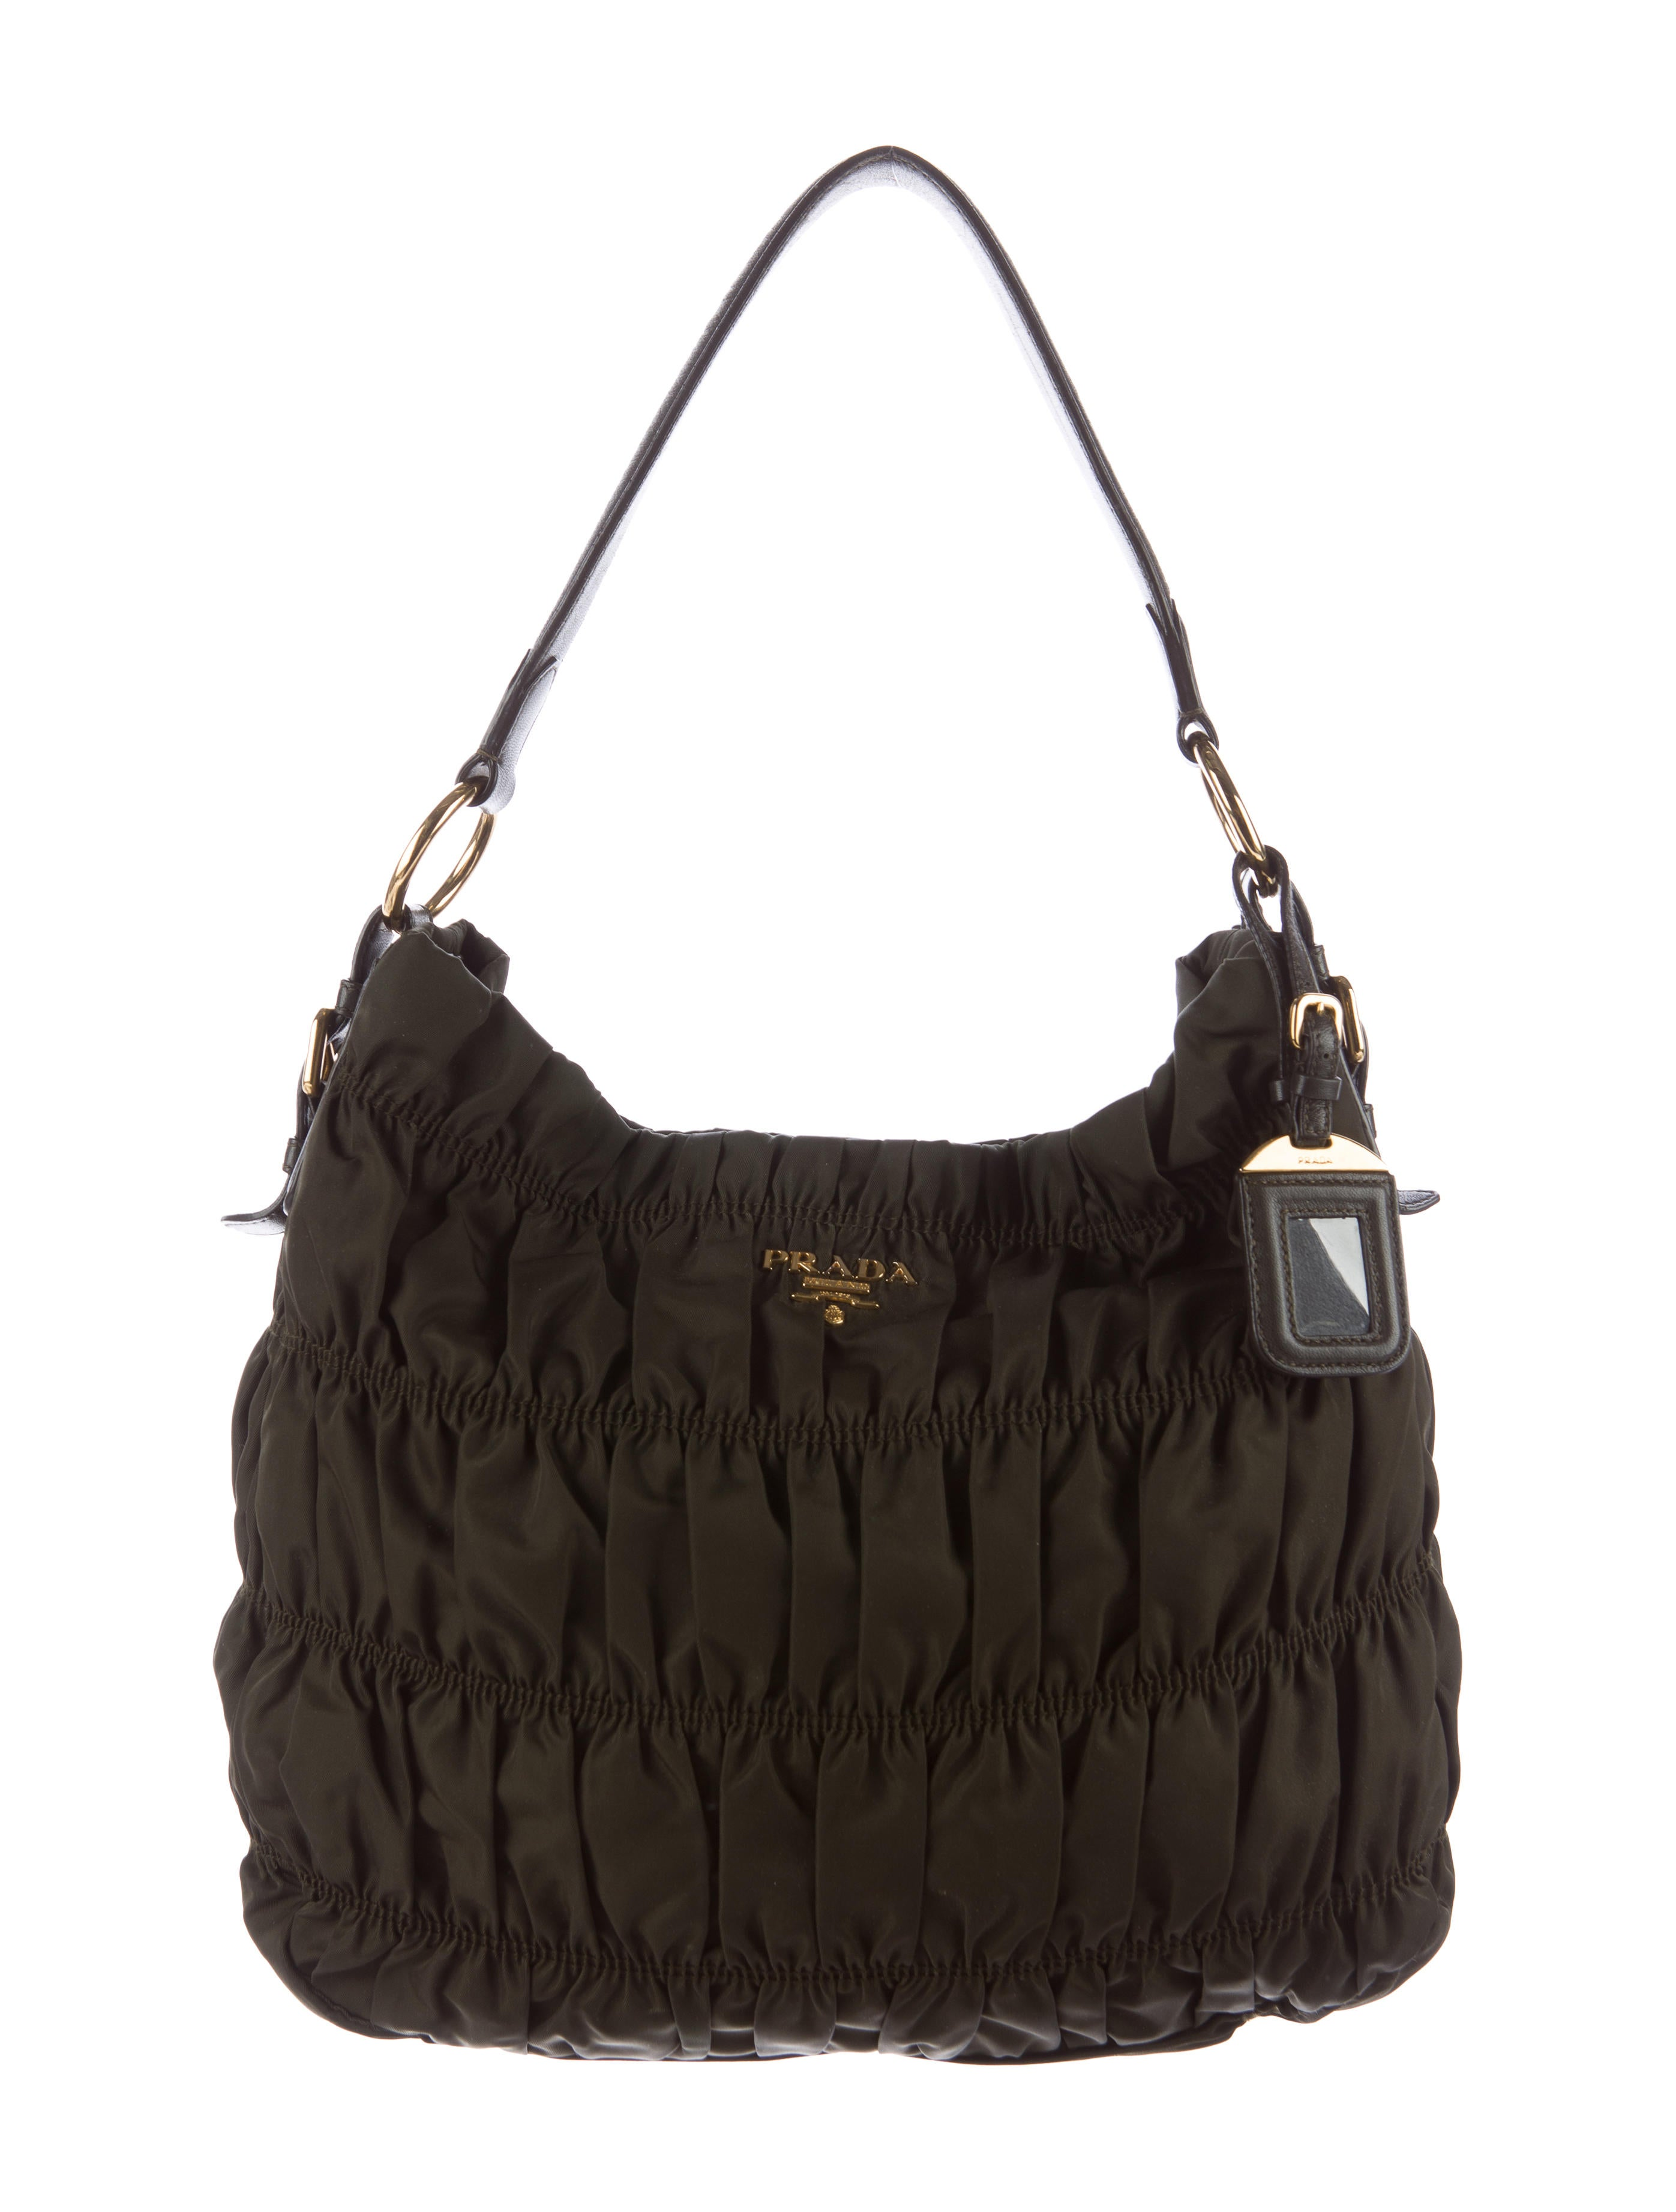 20b7e03c48175f Prada Tessuto Satchel Bags | Stanford Center for Opportunity Policy ...